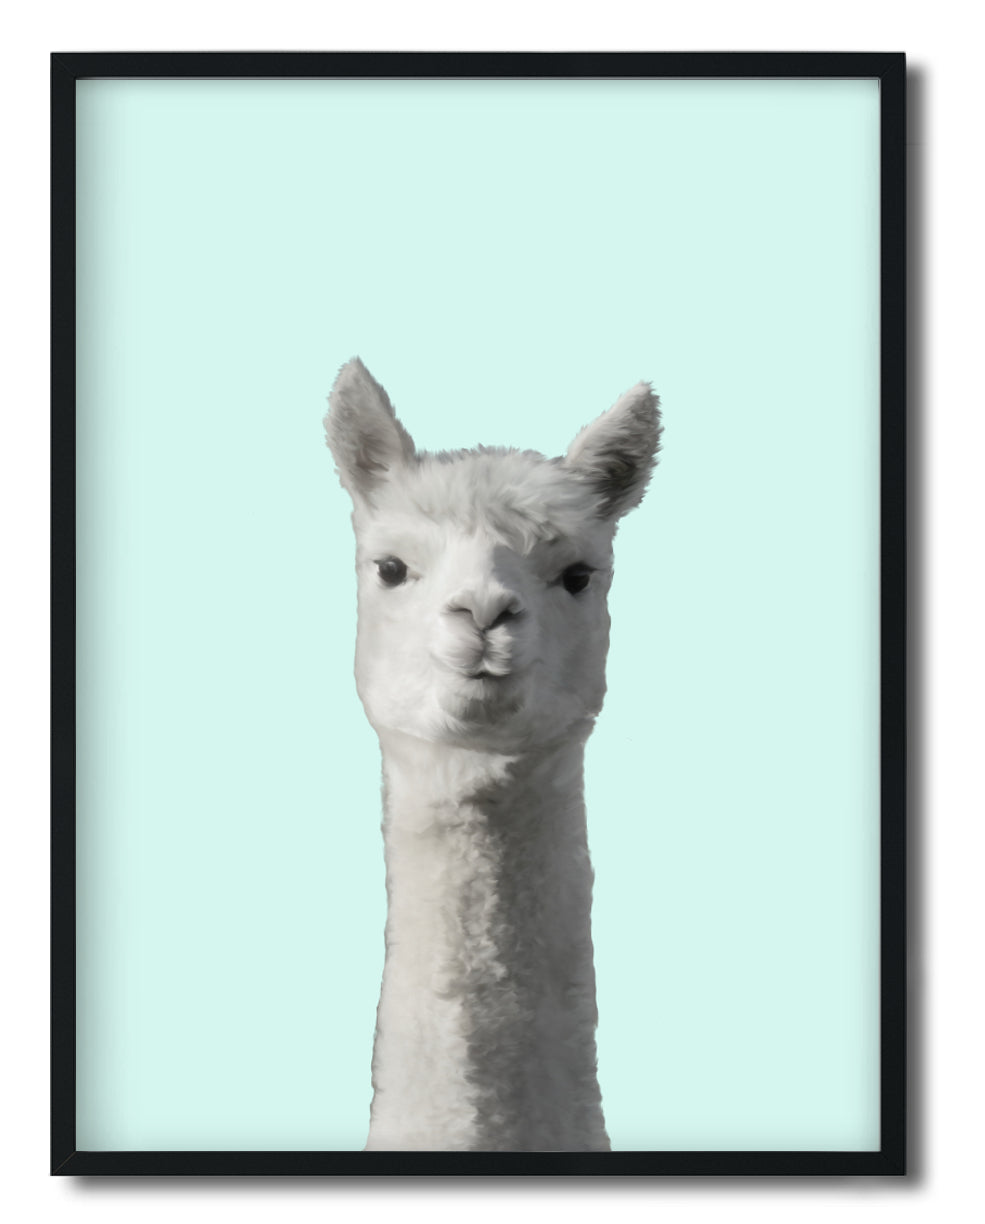 Wall Art -  Llama Mi - Framed / unframed art print (A-455)